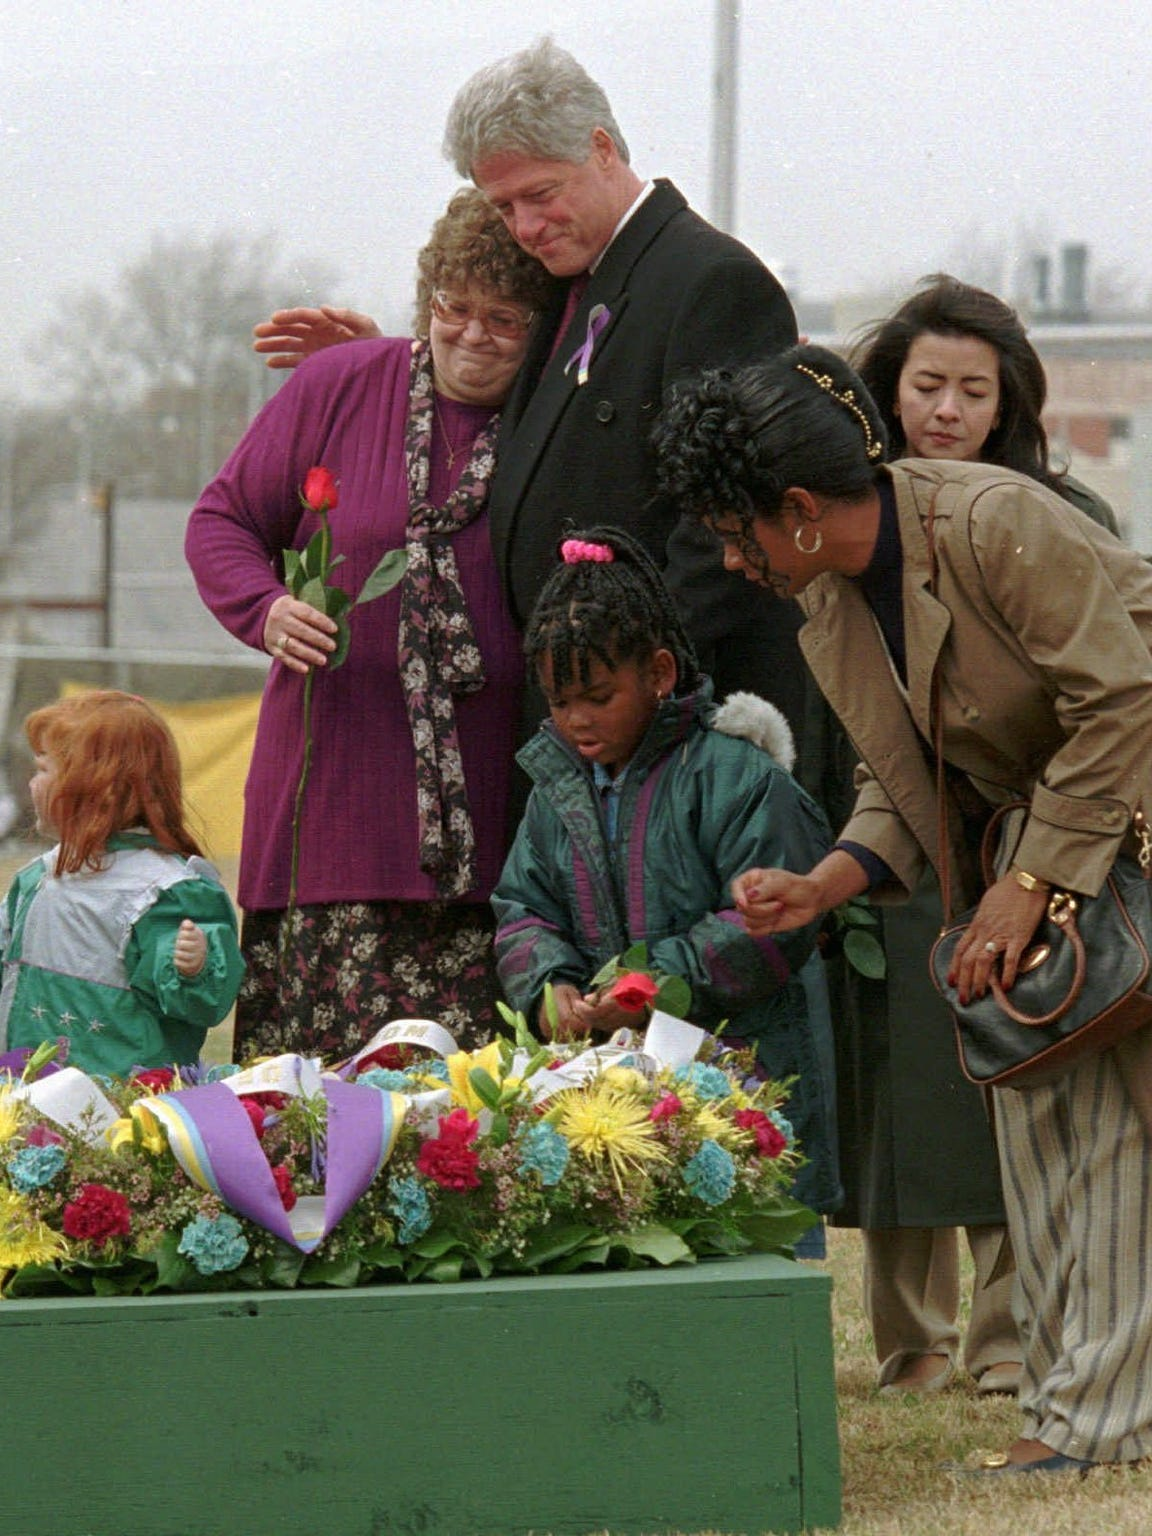 President Bill Clinton hugs Claudia Denny, mother of Rebecca Denny, left, as Nekia McCloud and her mother, Lavern McCloud, place roses on a memorial wreath on April 5, 1996, at the site of the former Alfred P. Murrah Federal Building in Oklahoma City. Both Rebecca Denny and Nekia McCloud were injured in the attack.